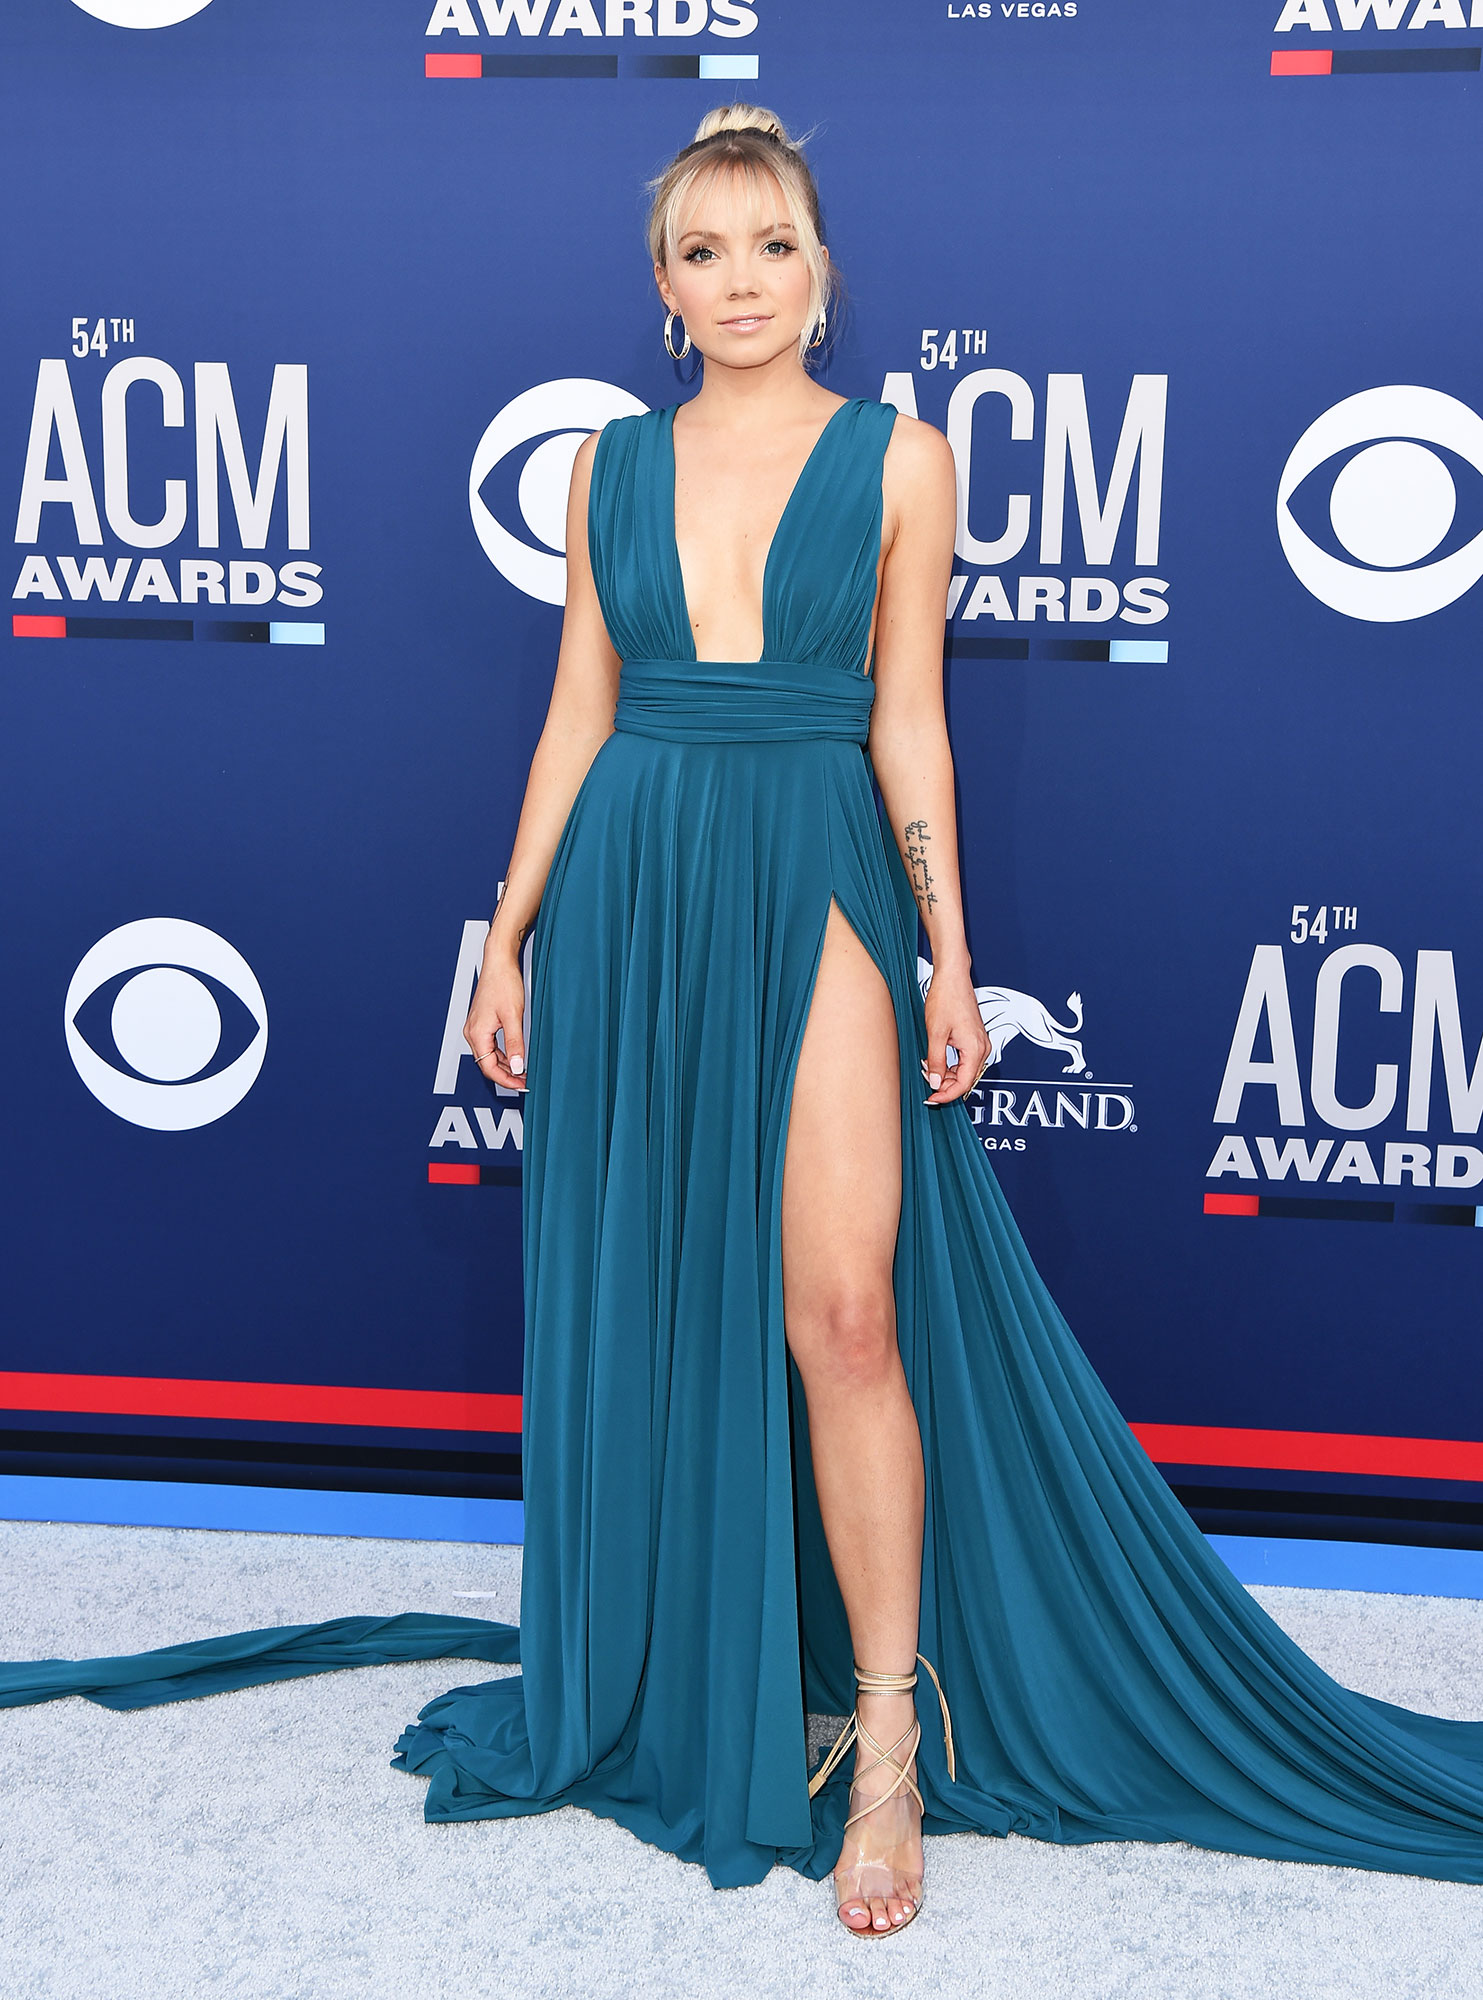 """Danielle Bradbery The Best Looks From the Country Music Awards Red Carpet - The plunging neckline, hip-high slit and long train all made the """"Worth It"""" singer's teal dress a real head-turner."""